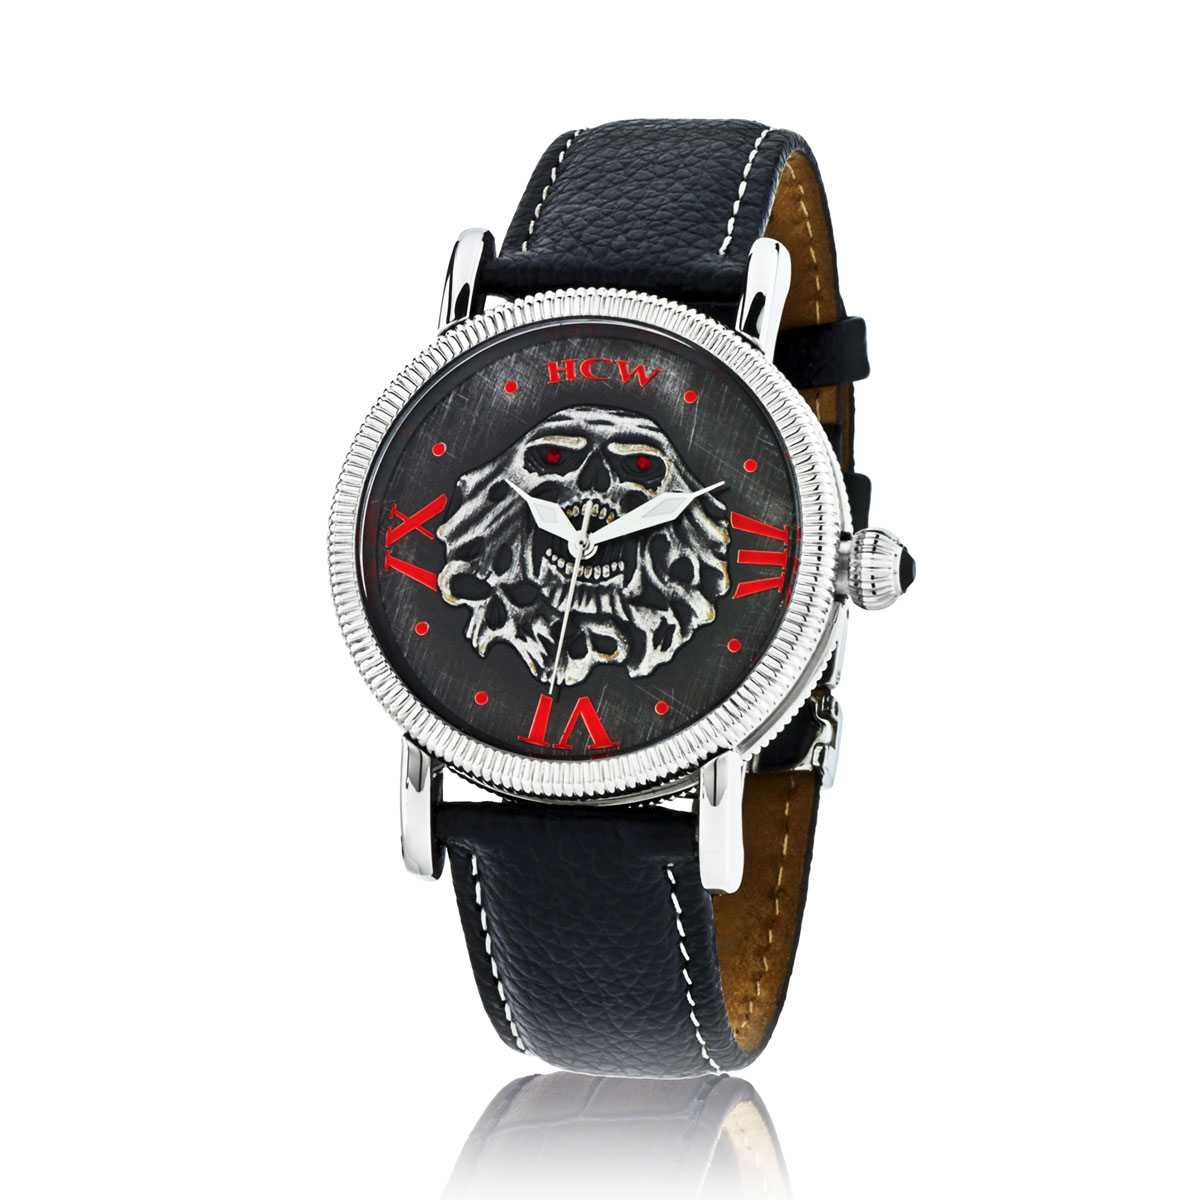 Soul Collector Watch in Leather and Stingray Strap in Black, designed by Steve Soffa